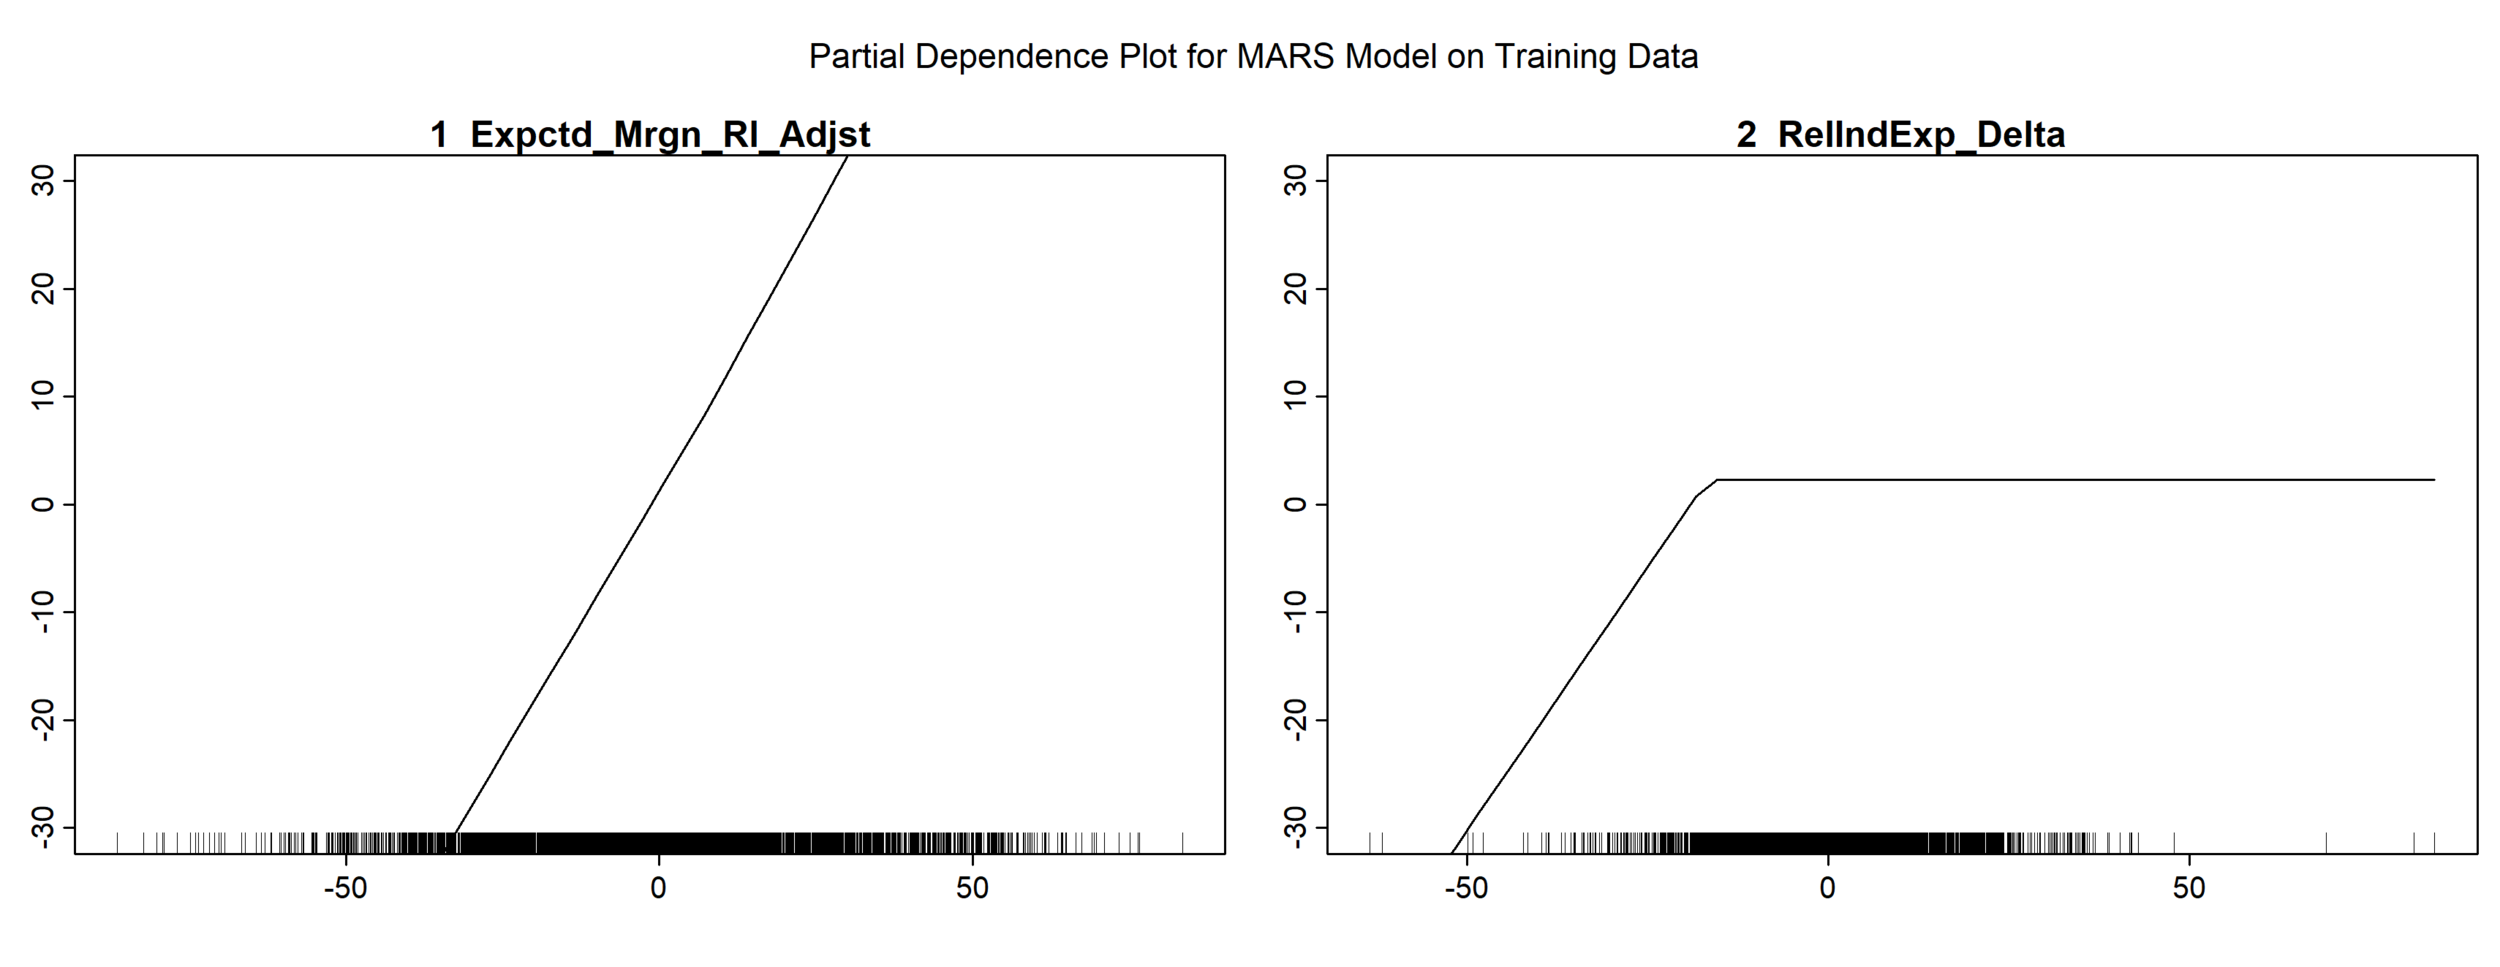 Partial Plot for MoSHBODS MARS Model with Margin as Dependent - Delta Experience - 1980on.png